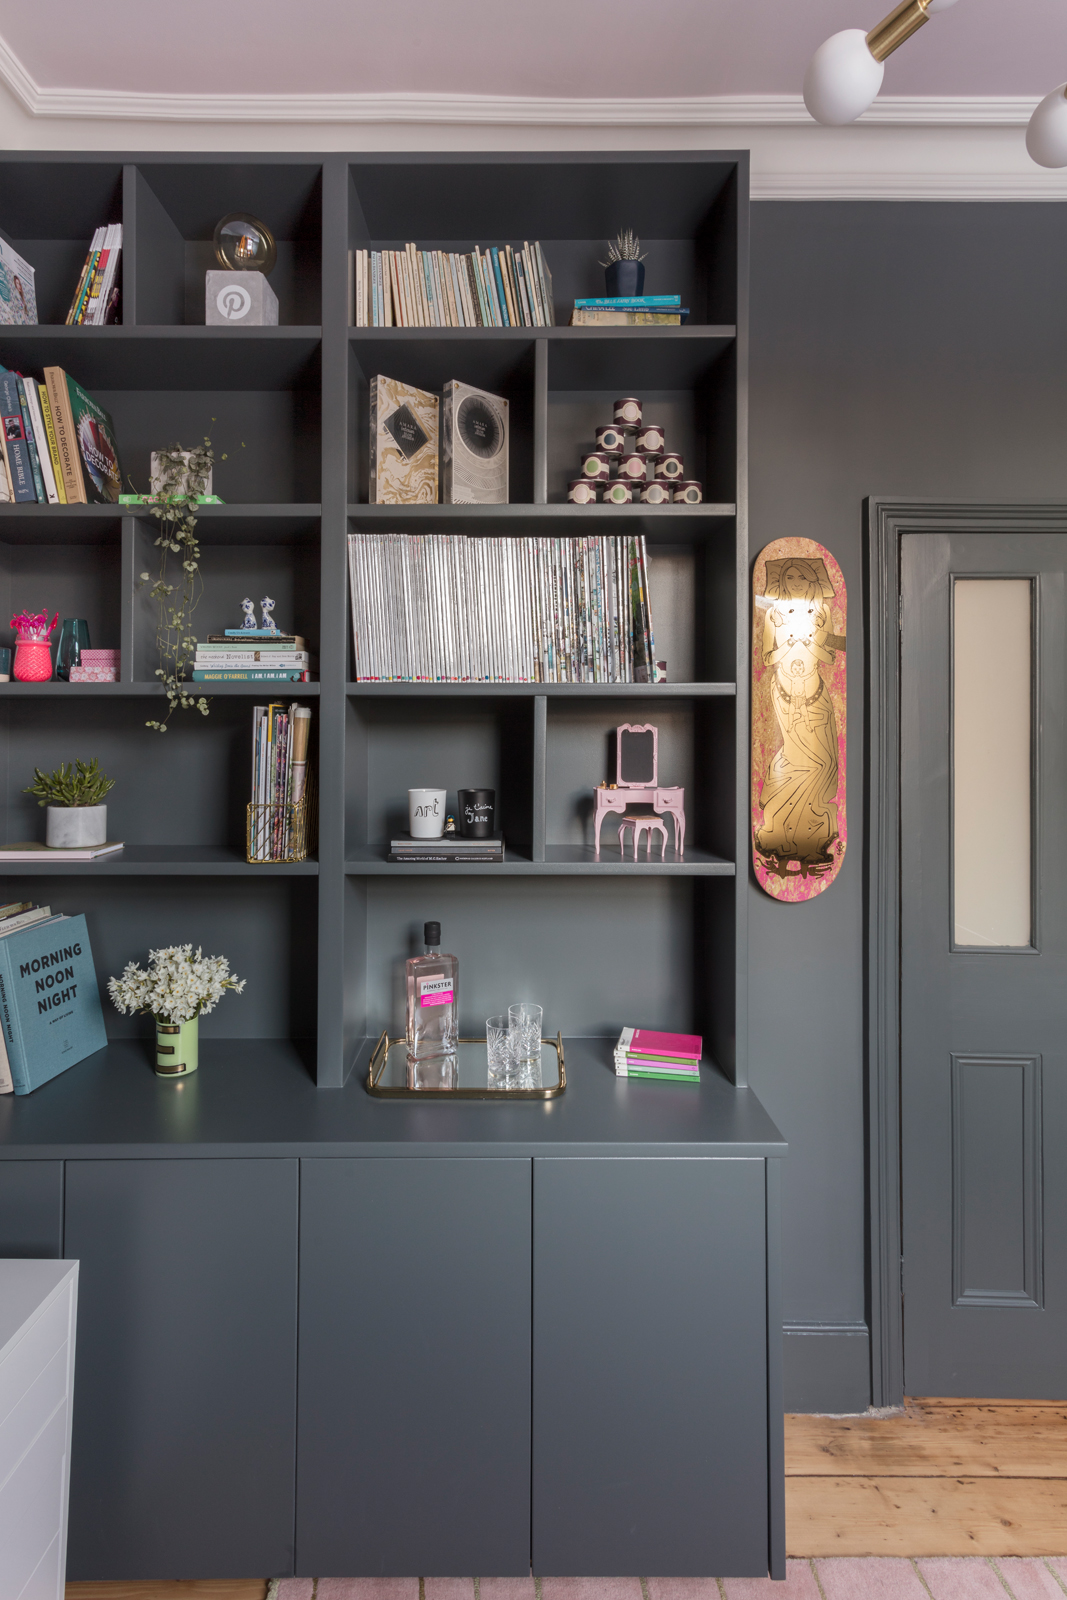 AFTER! Shelves by Freeborn Carpentry, 'Kateboard' by Grayson Perry/Photo: Susie Lowe